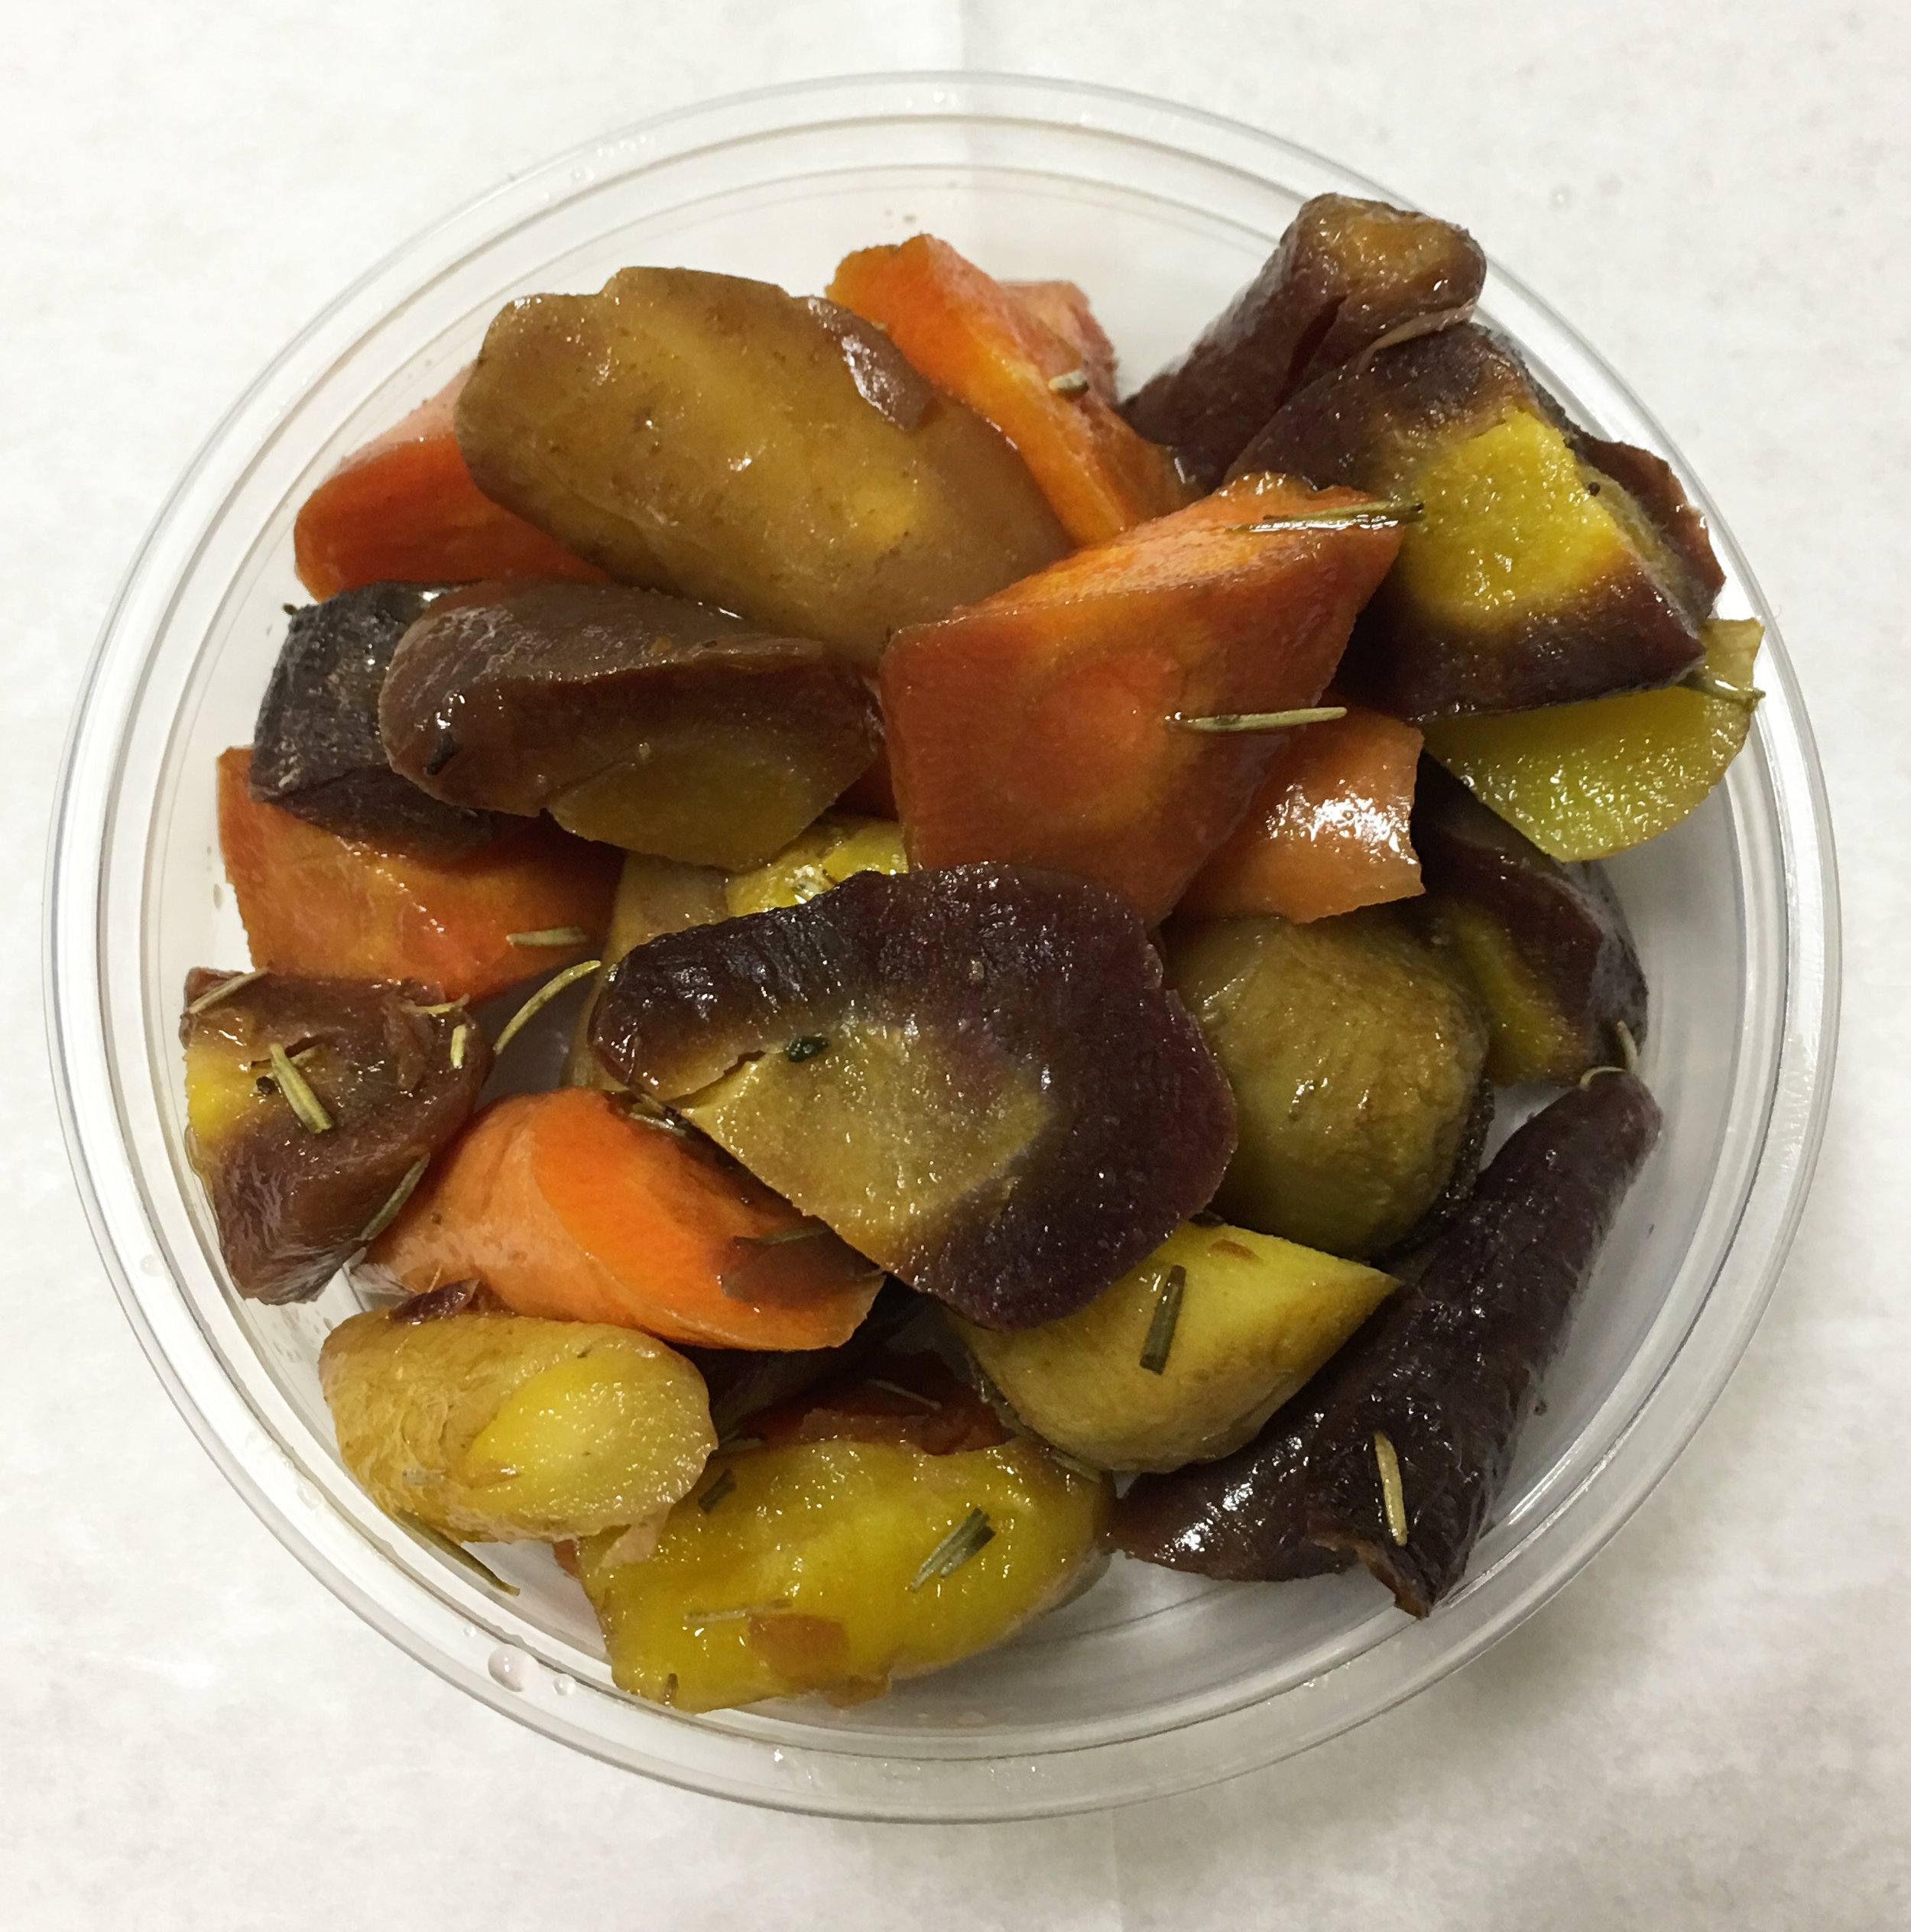 Baked colorful heirloom carrots with rosemary.